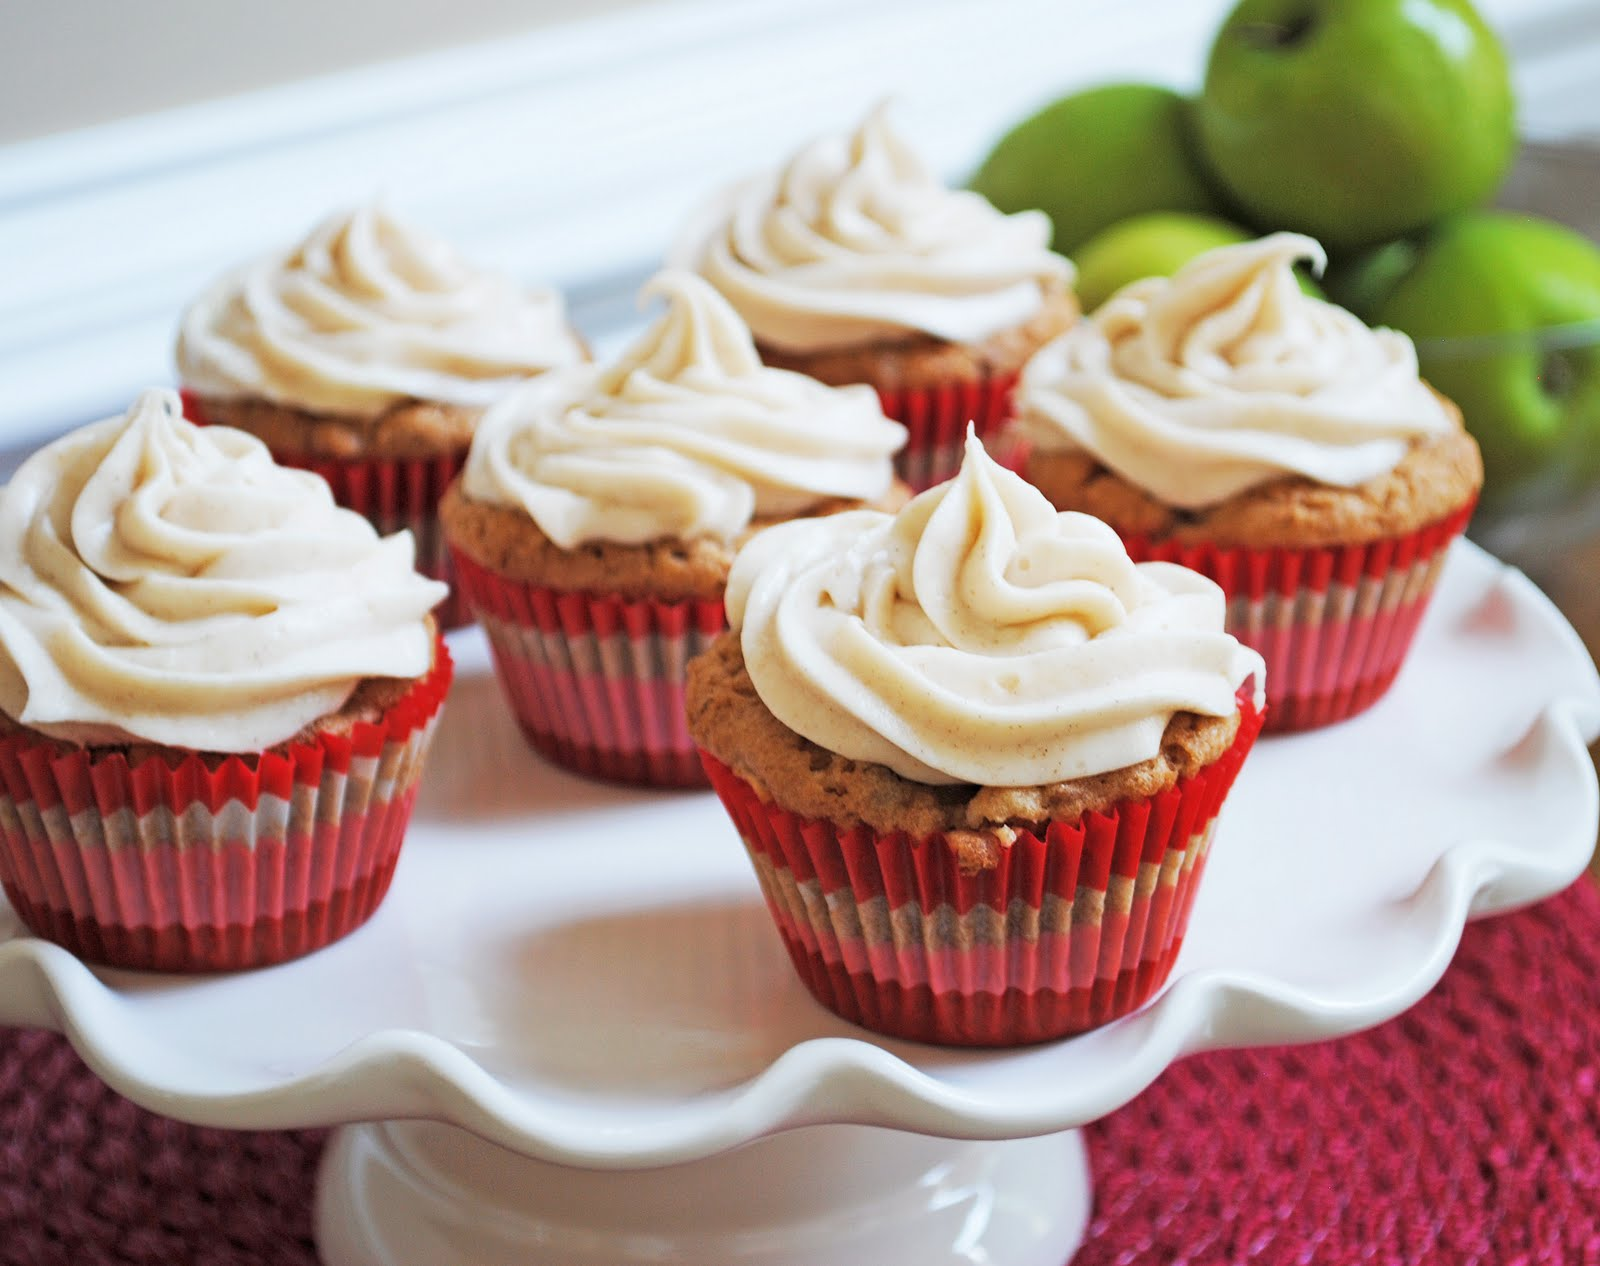 Ryan Bakes: Apple Pecan Cupcakes with Cinnamon Cream Cheese Frosting